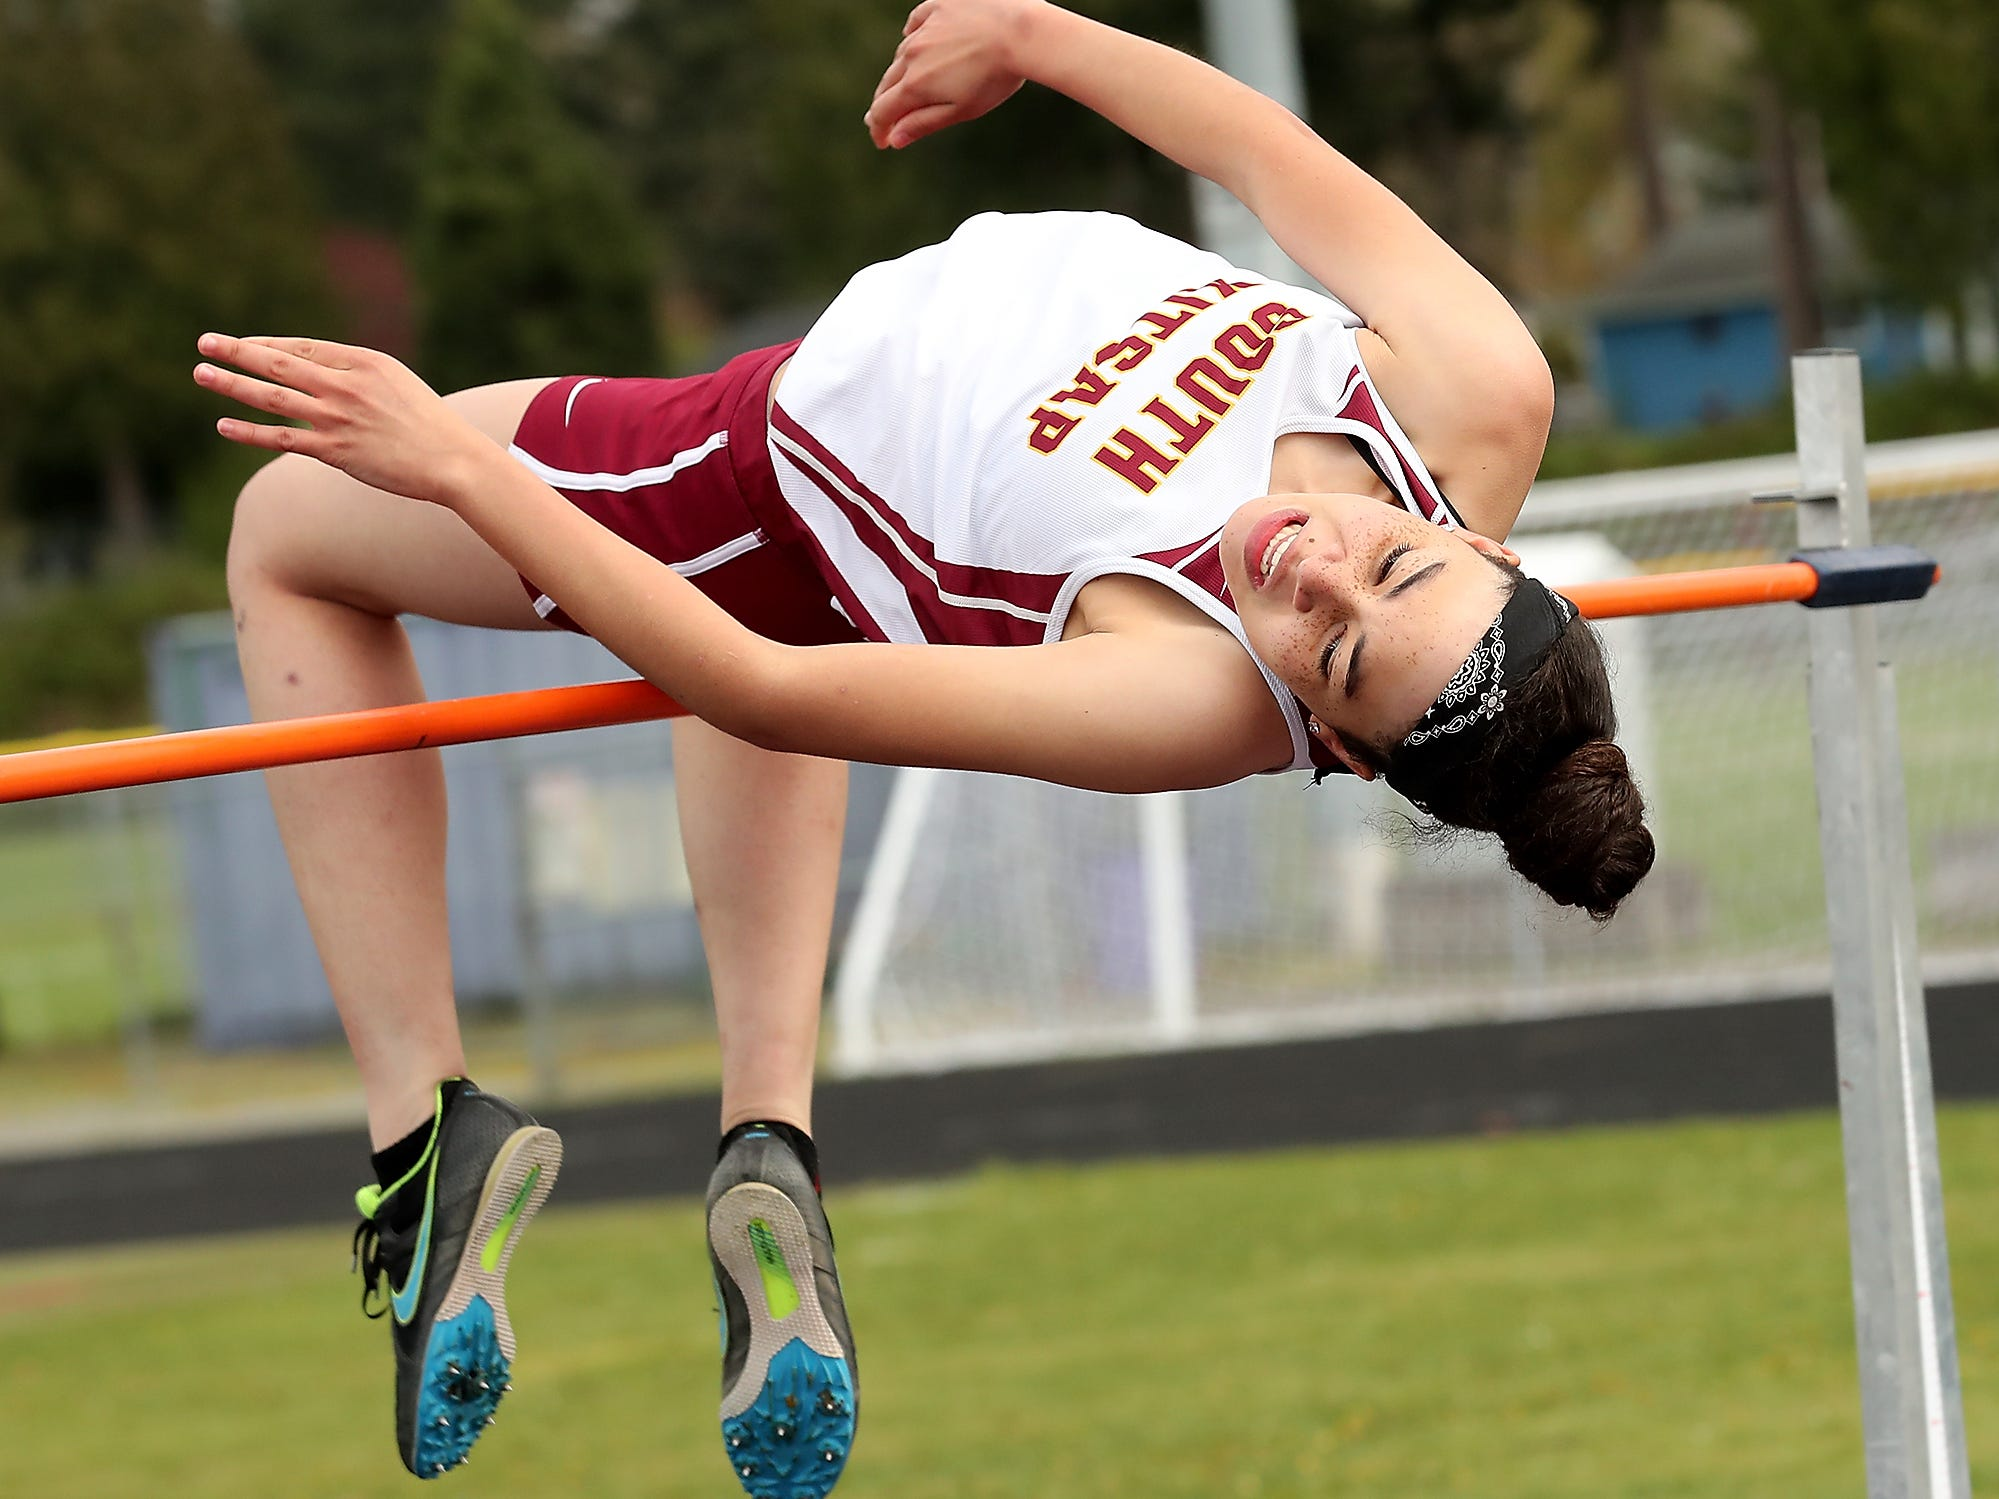 South Kitsap's Audrey Green catches the high jump bar during the Lil' Norway Invitational at North Kitsap High School in Poulsbo on Saturday,  April13, 2019.